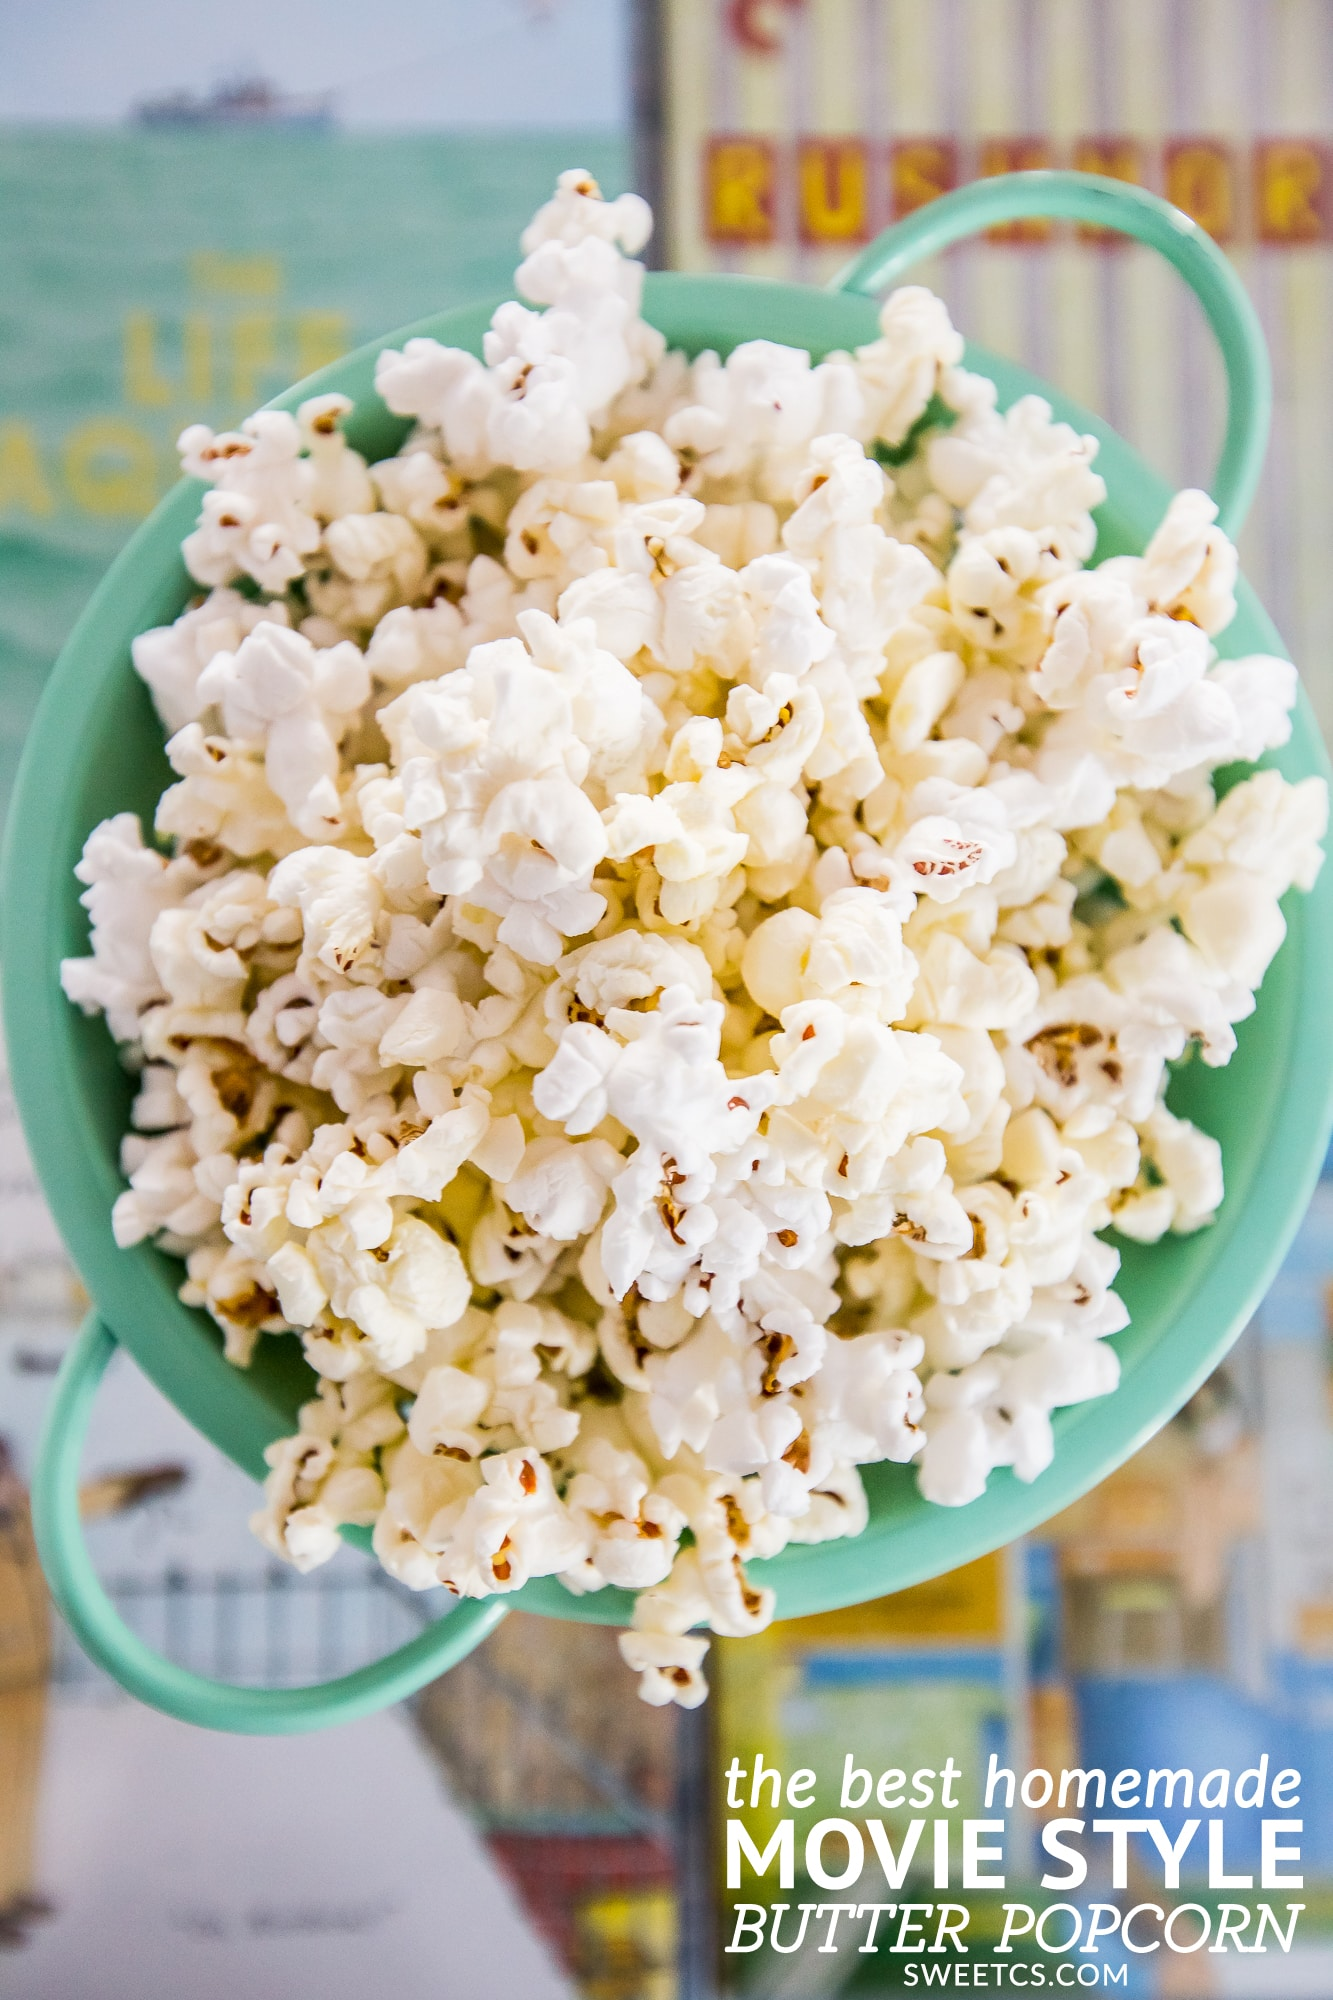 The Best Homemade Movie Style Butter Popcorn Sweet Cs Designs